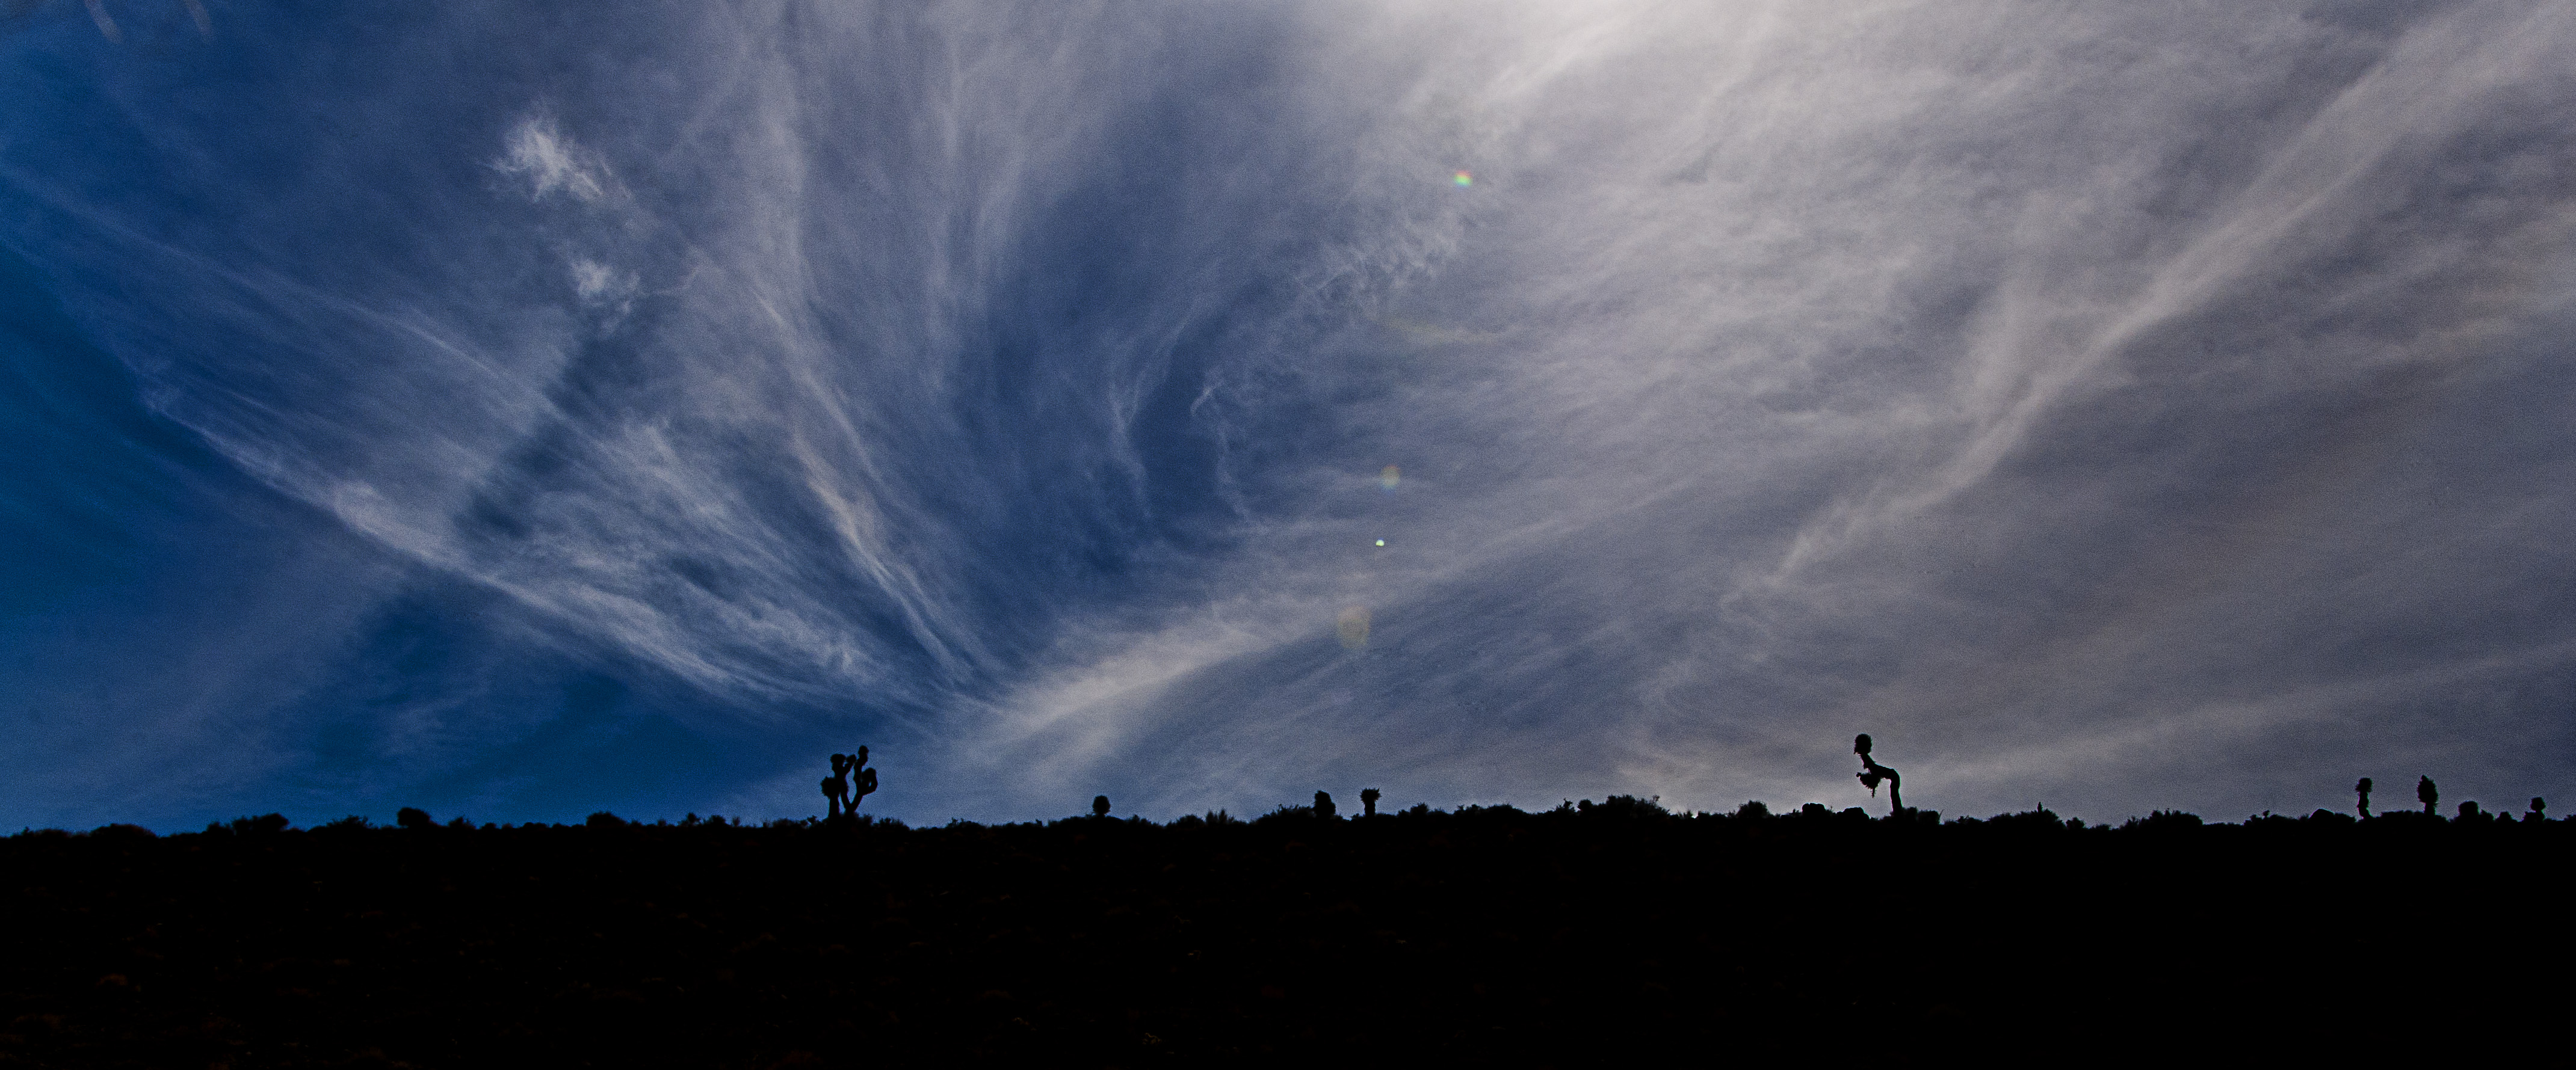 Joshua trees silhouetted upon a ridgeline against a wispy clouded sky